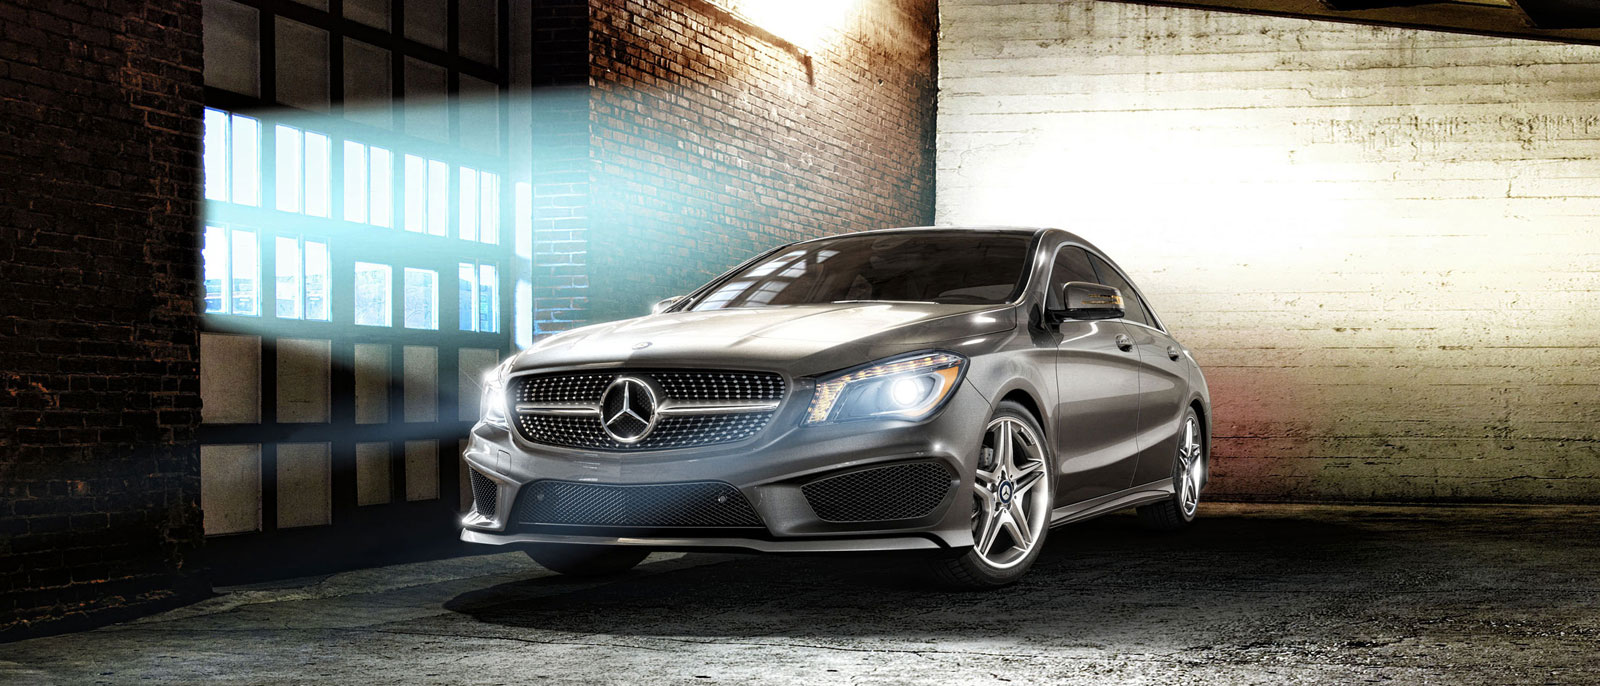 Autotrader stunned by smart stylish 2015 mercedes benz for Mercedes benz of richmond